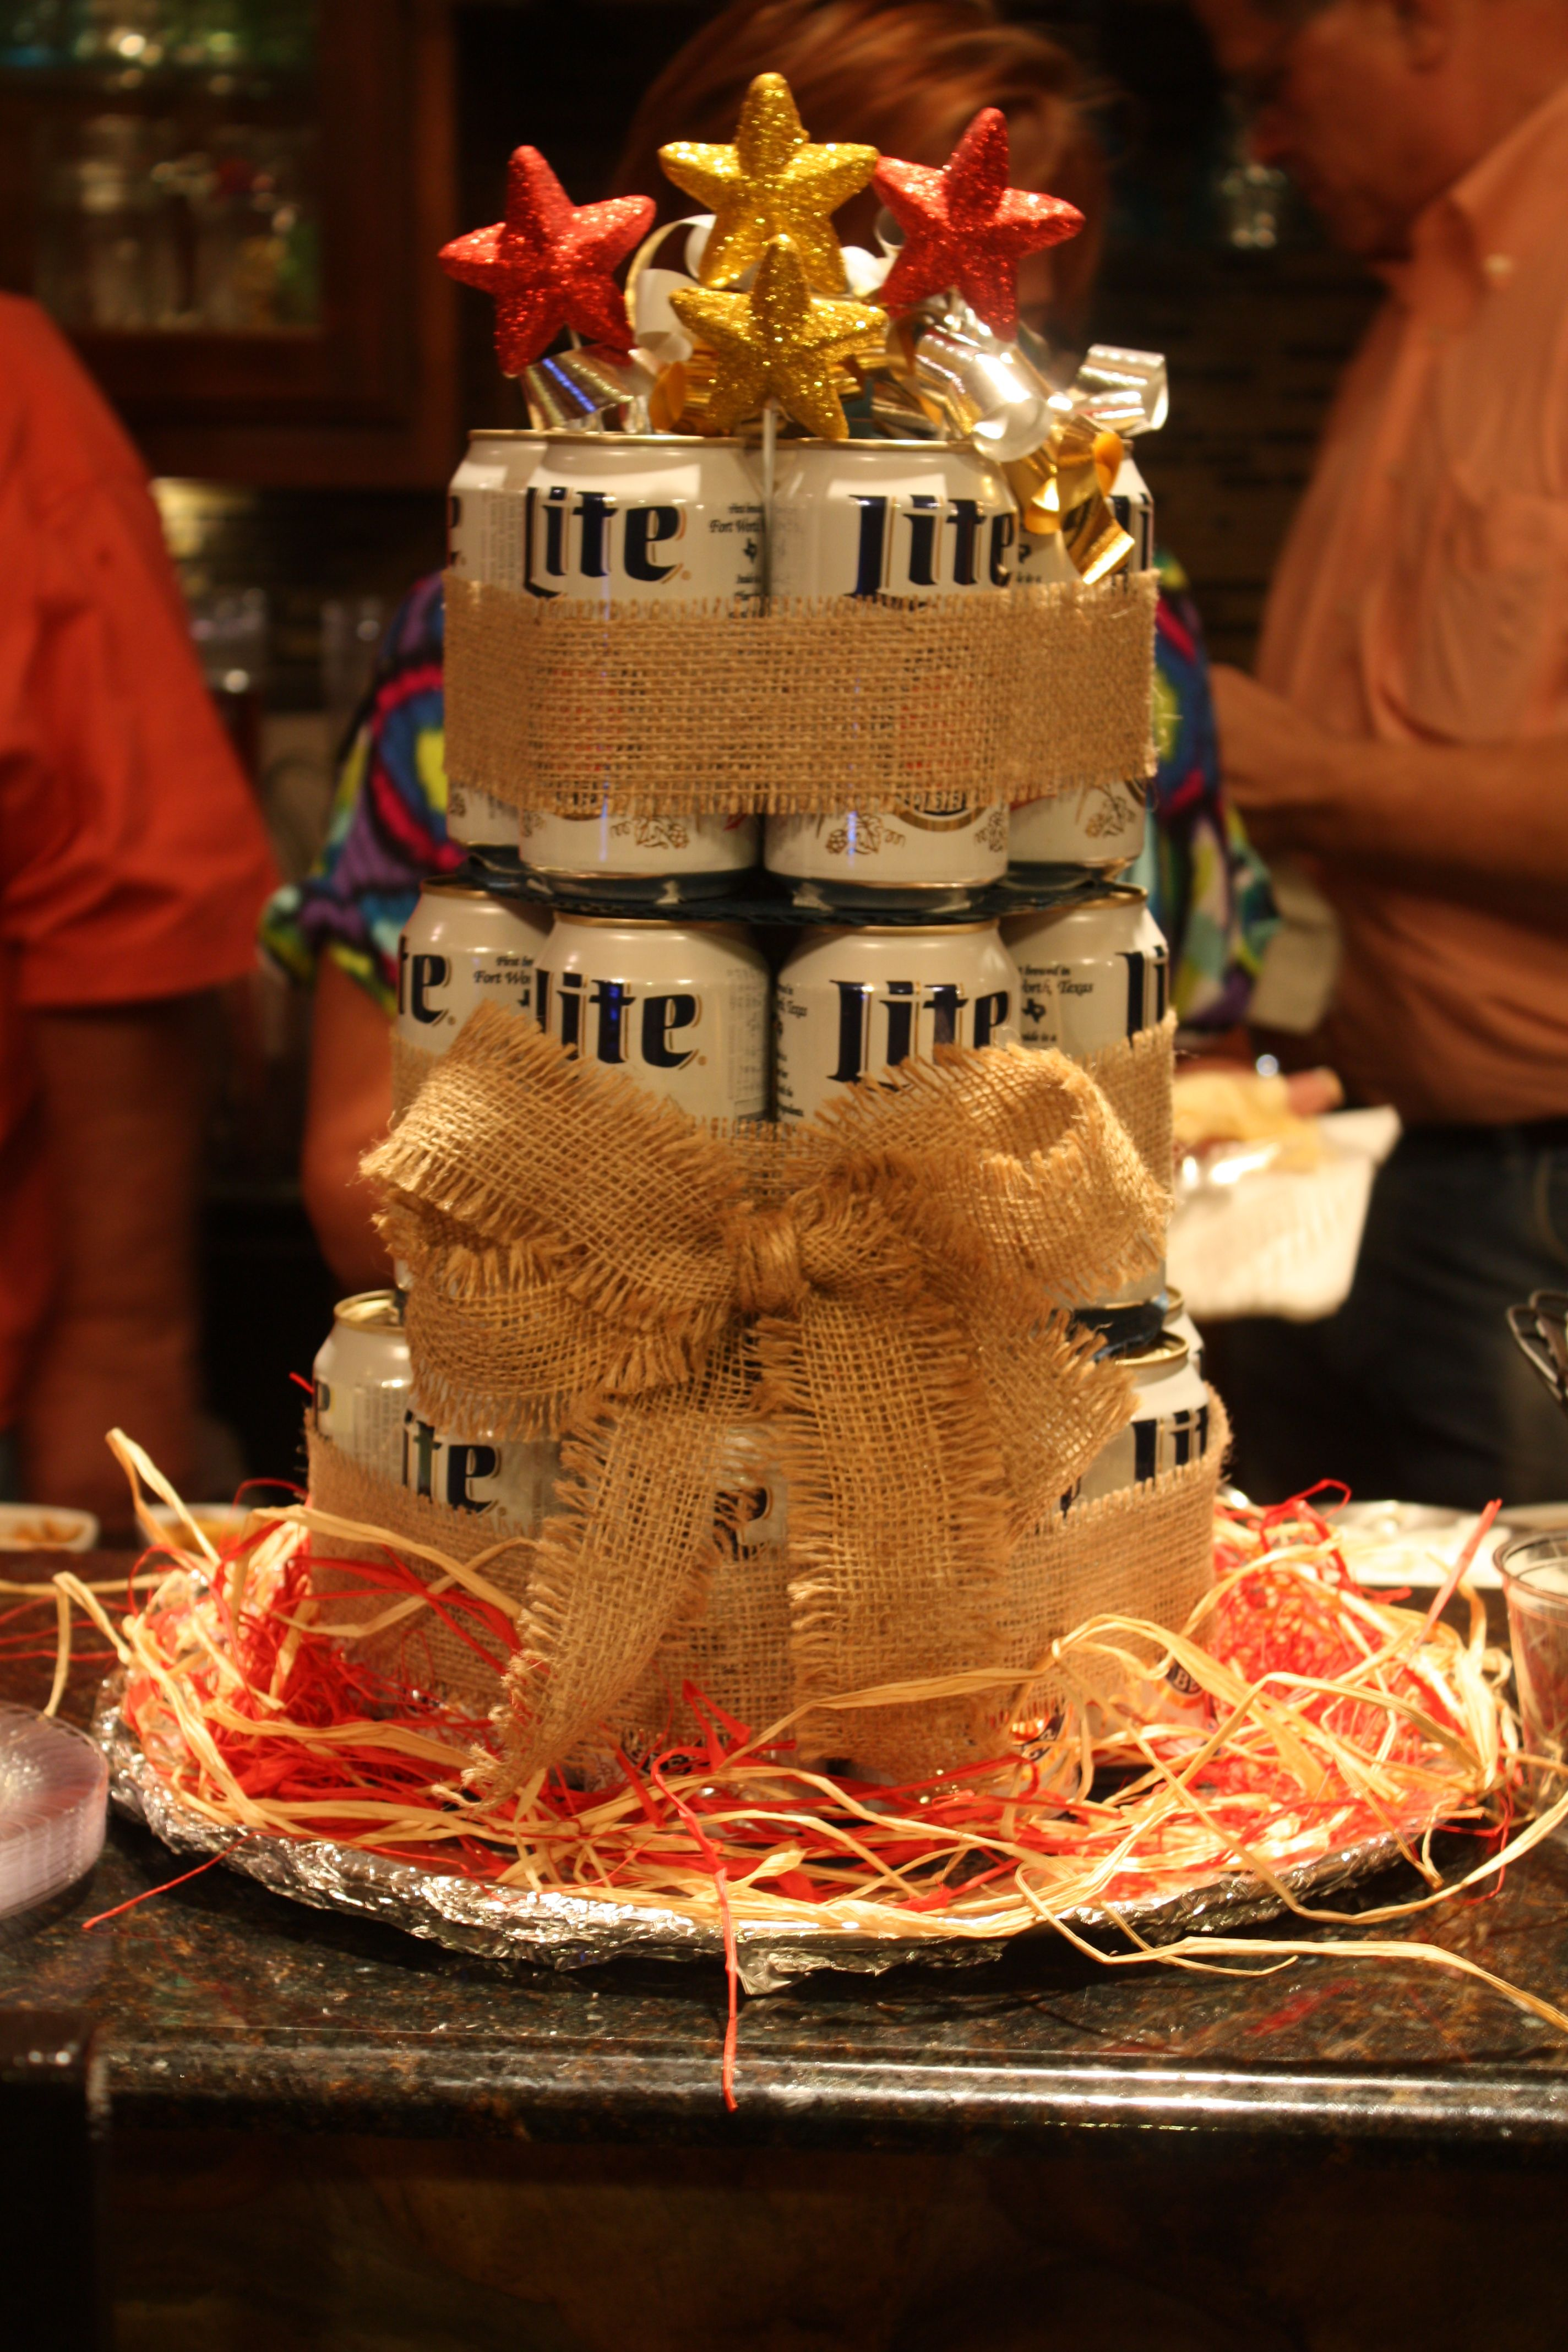 Perfect birthday centerpiece for that man who loves beer